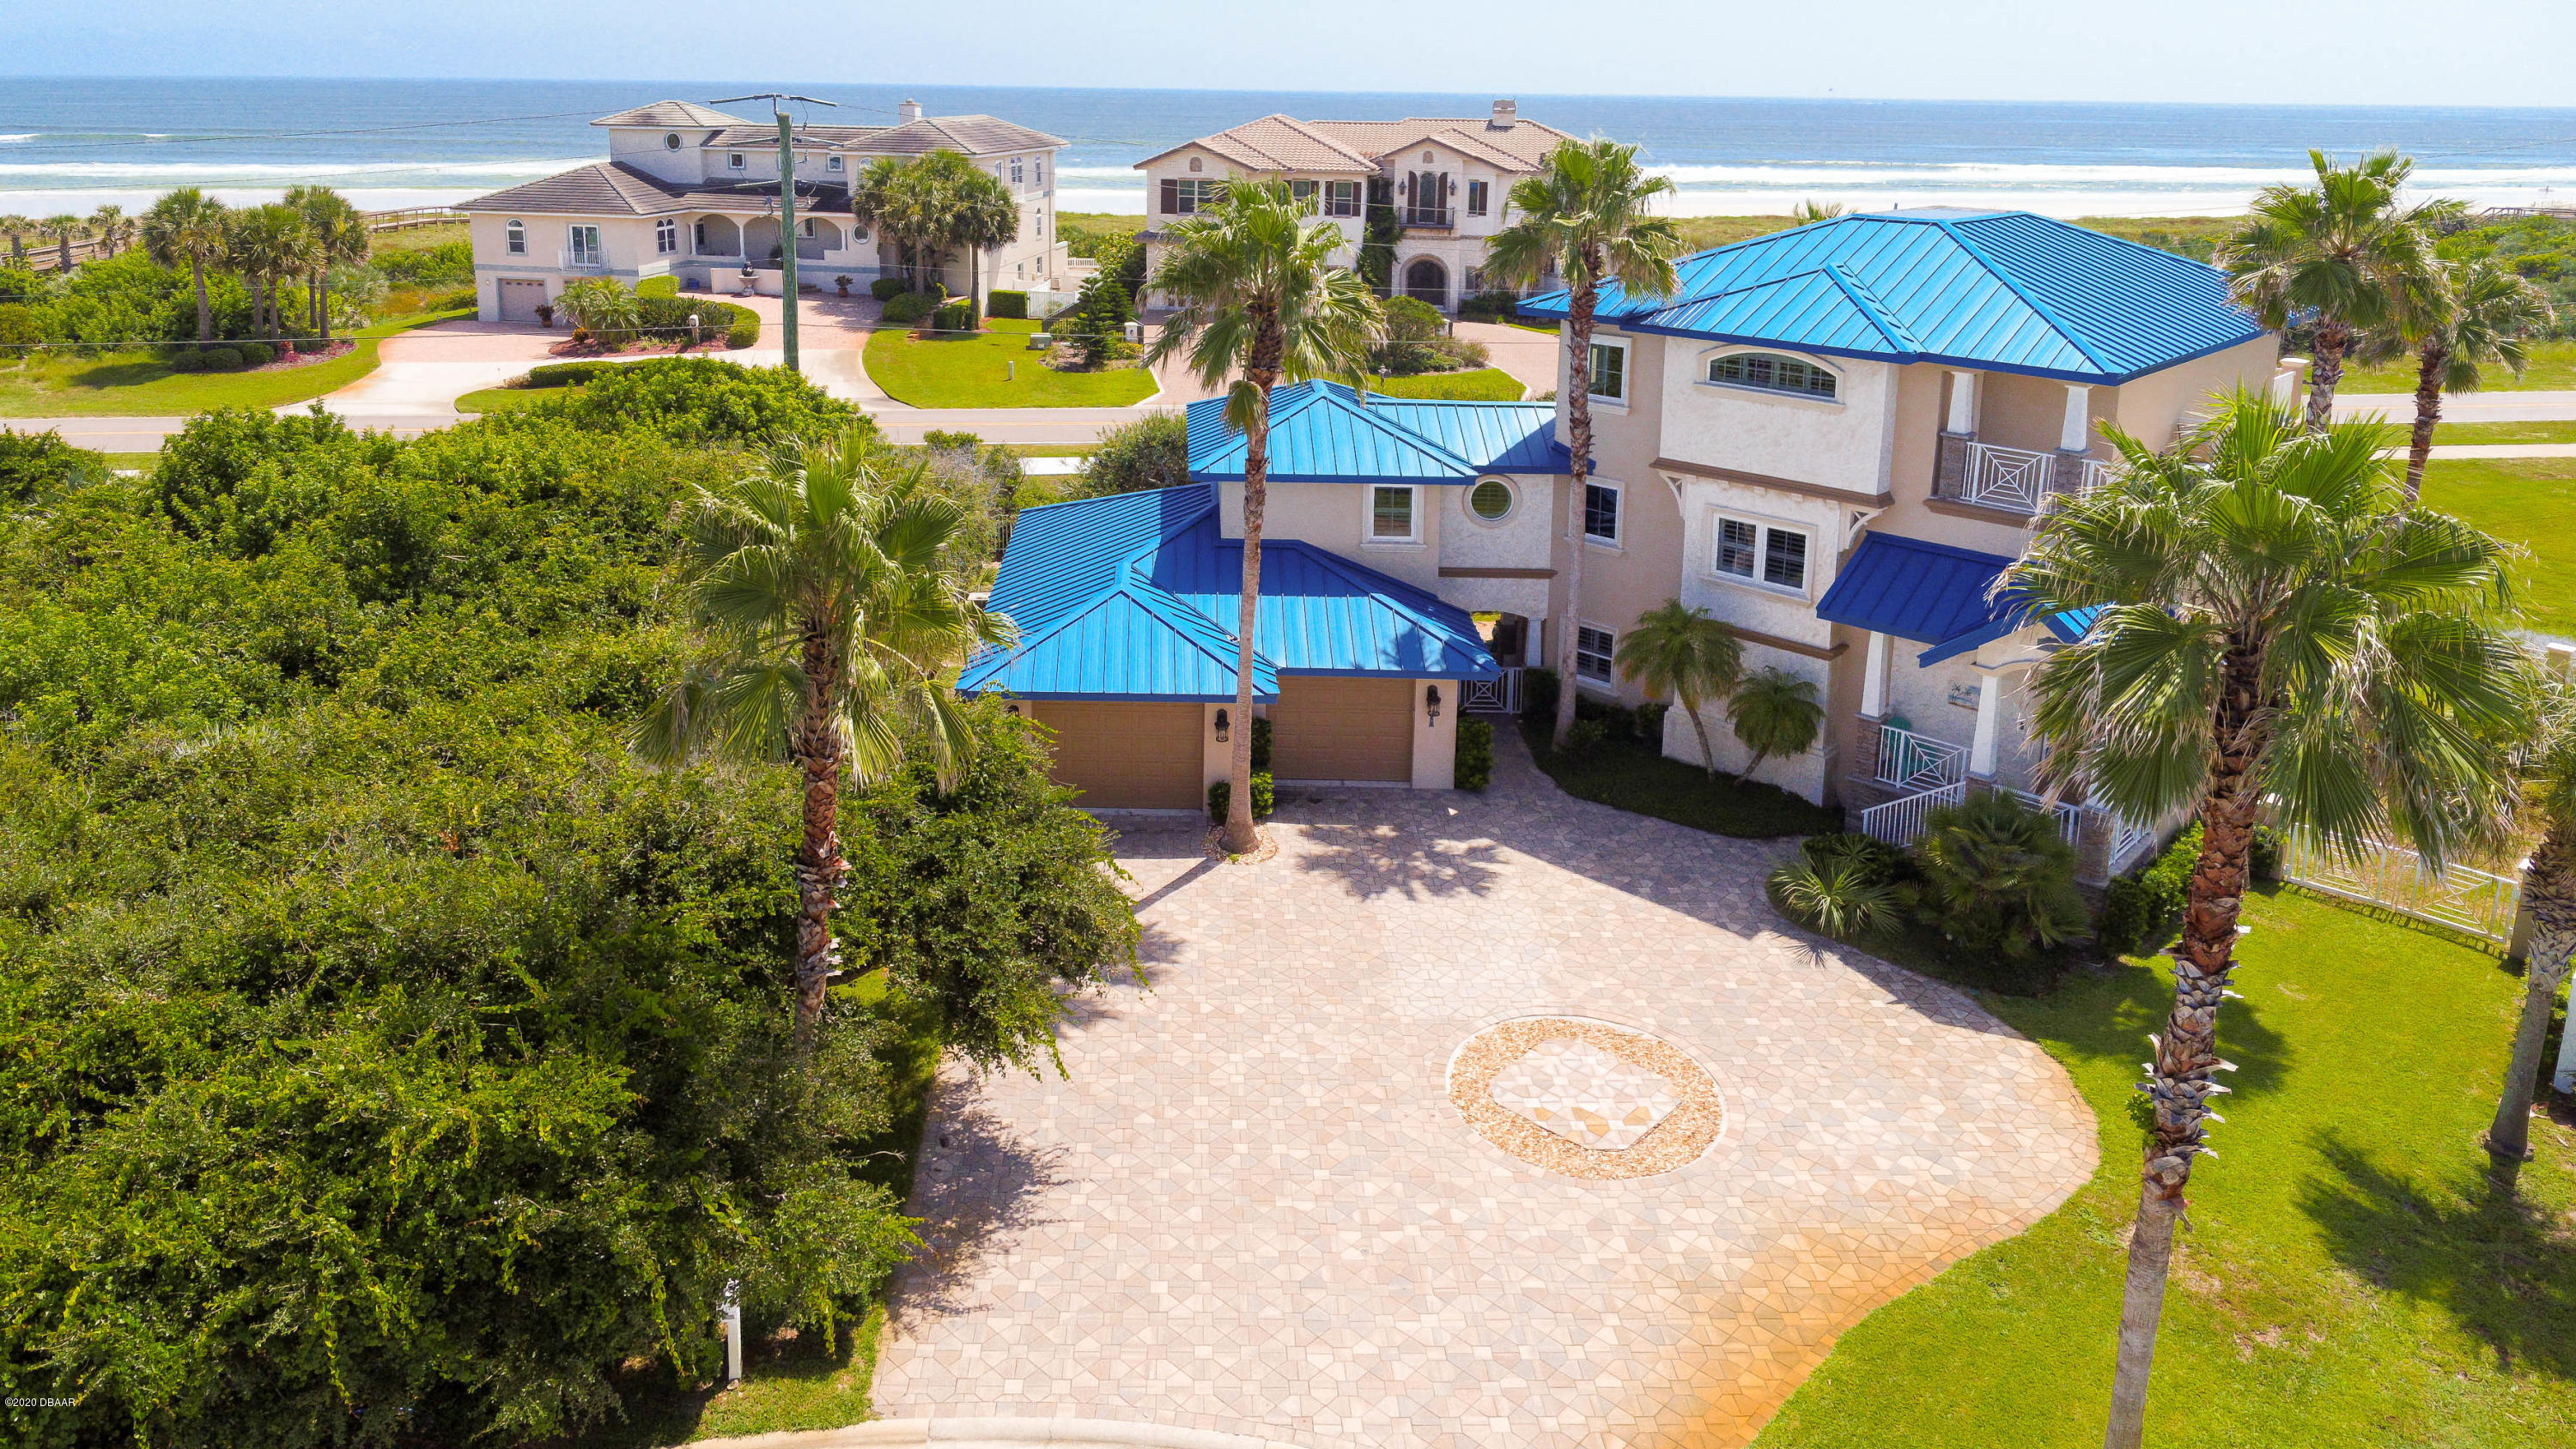 Photo of 2 Mar Azul N, Ponce Inlet, FL 32127